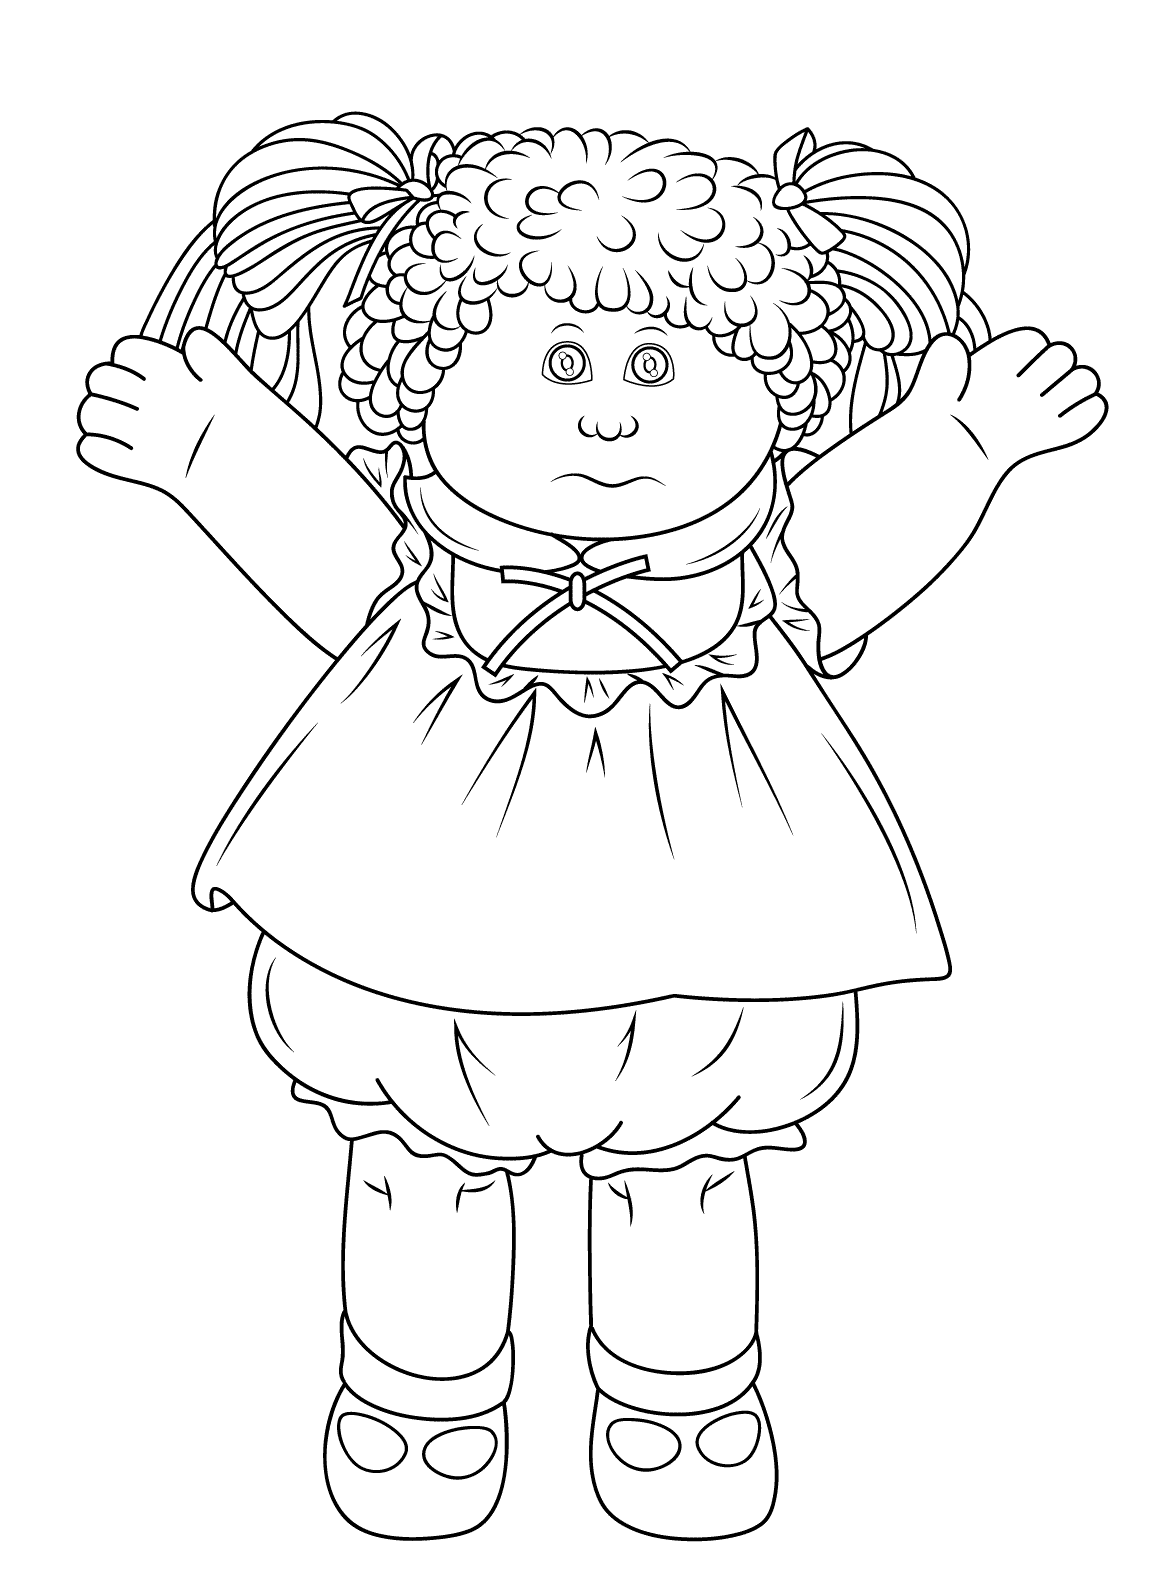 coloring book for kids princess coloring pages best coloring pages for kids for kids coloring book